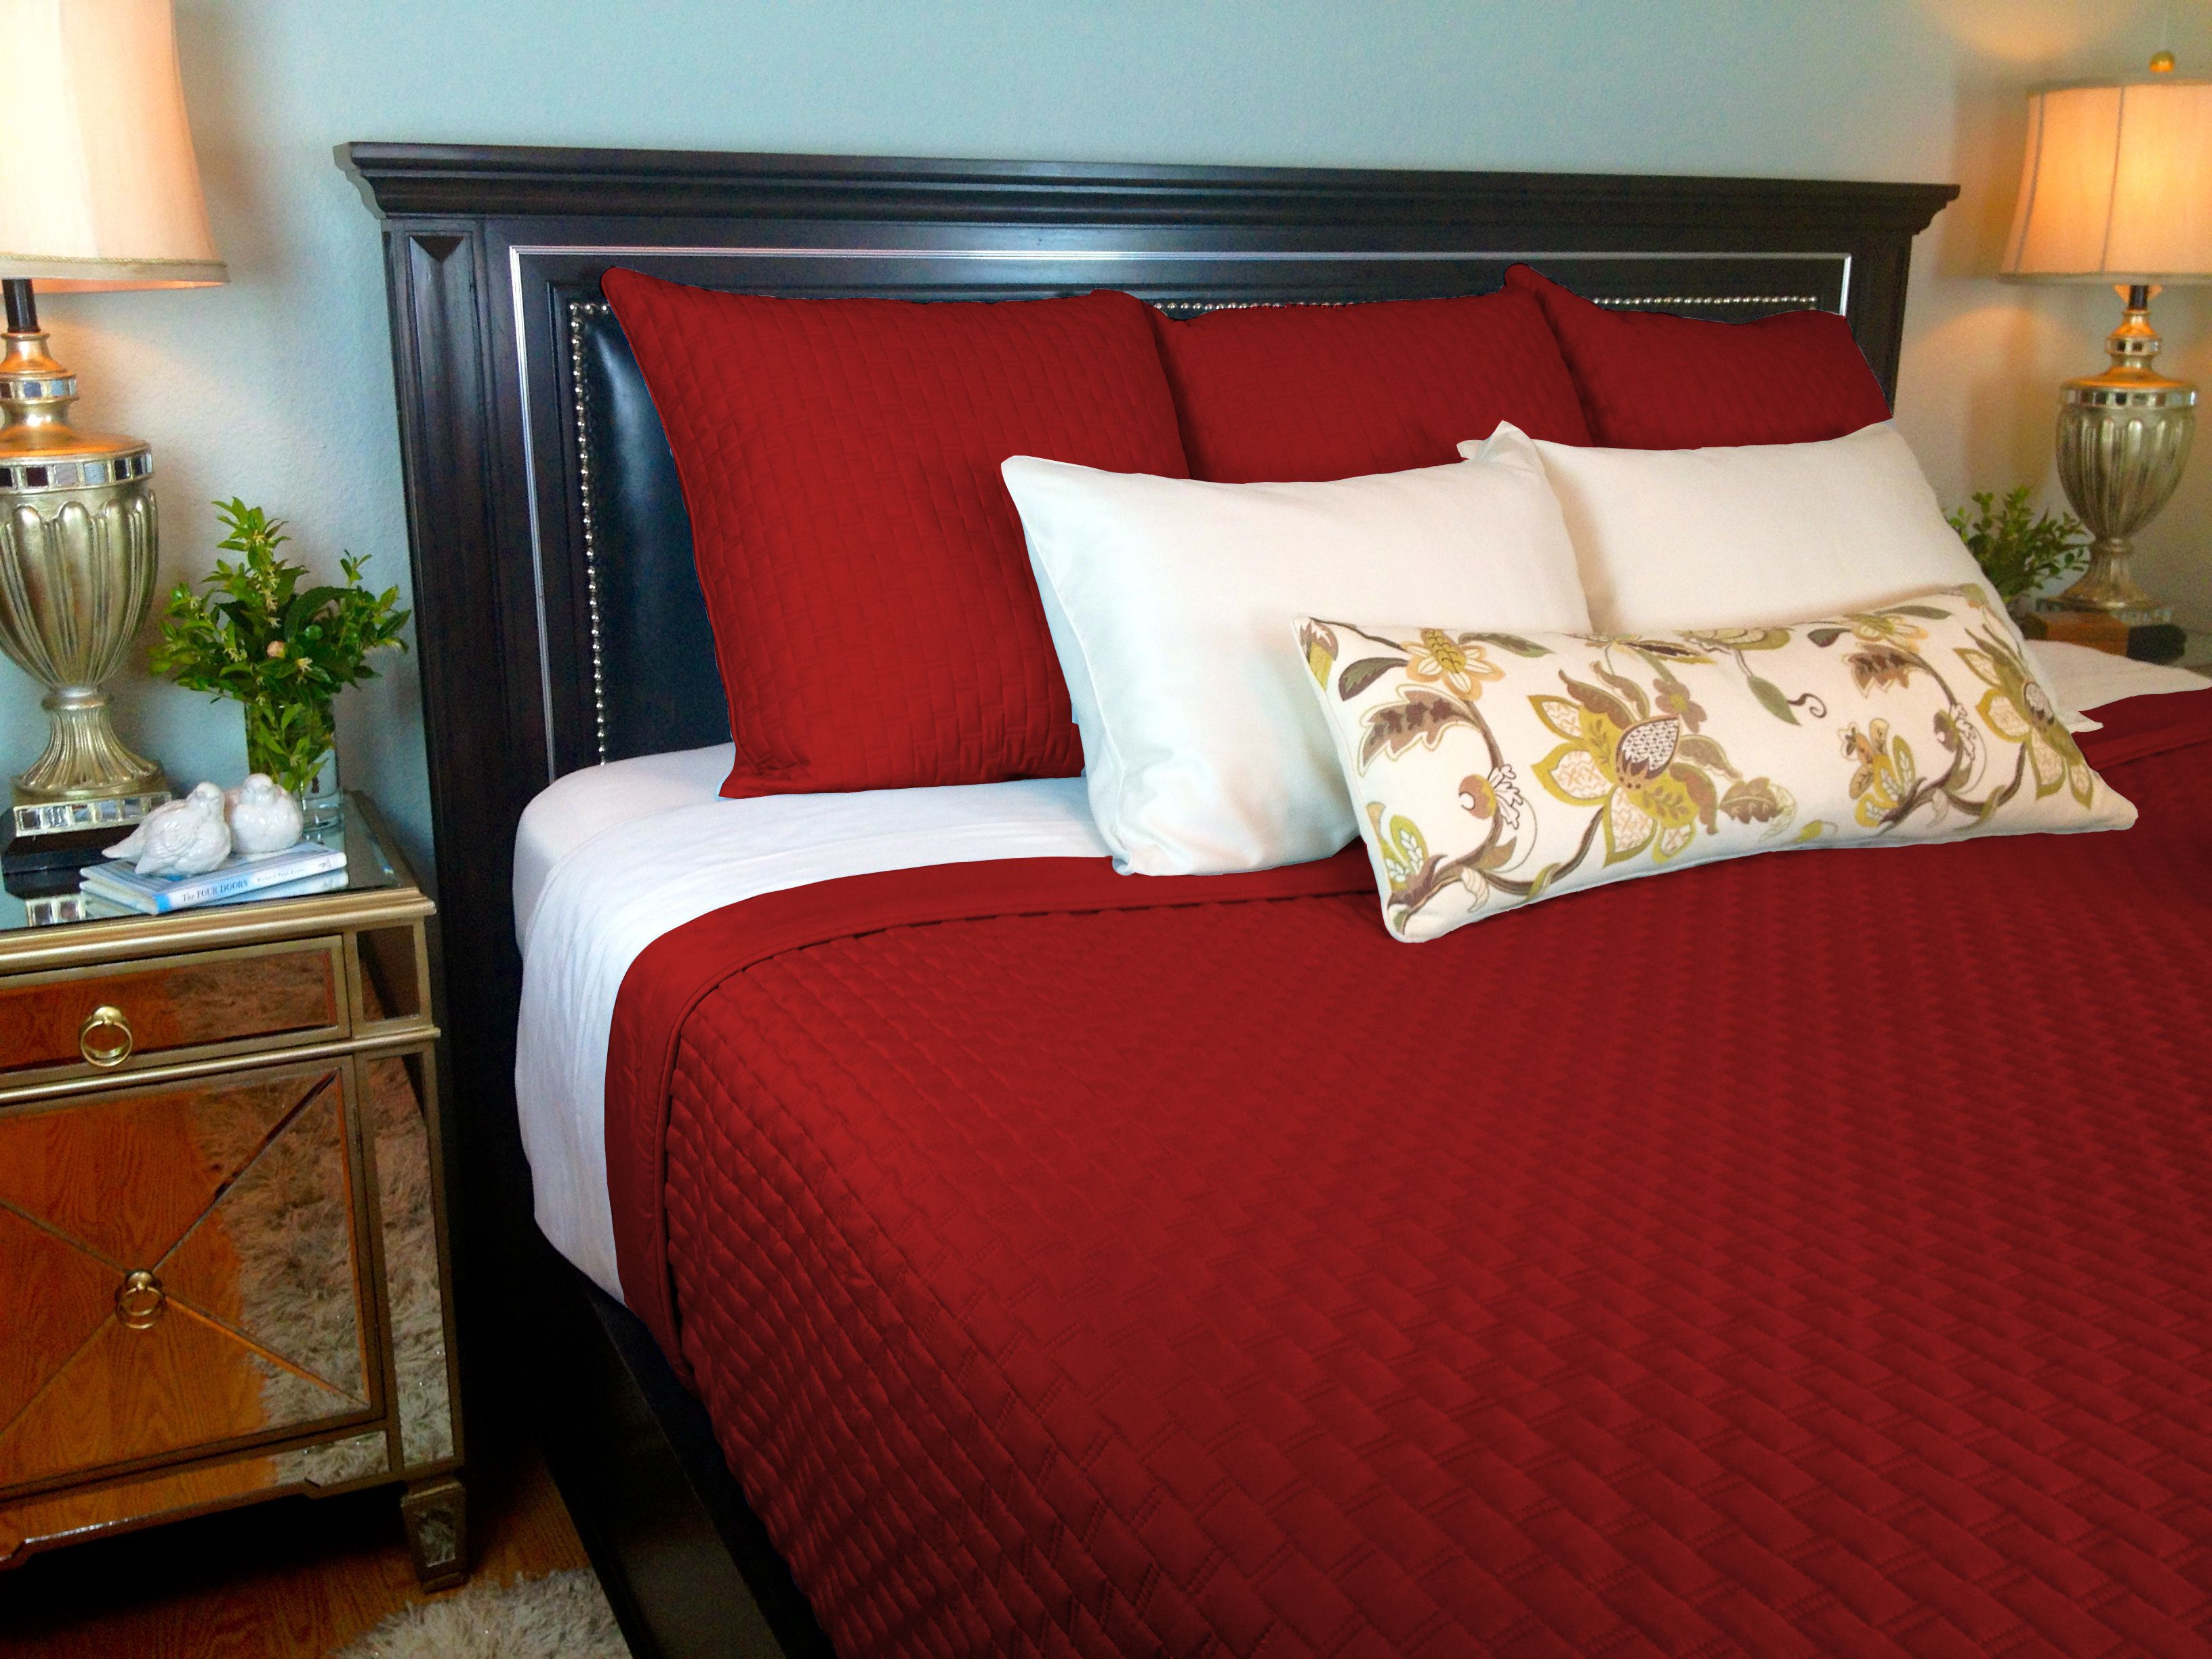 cayenne can spice up your bedroom  bedding sets bed bedroom